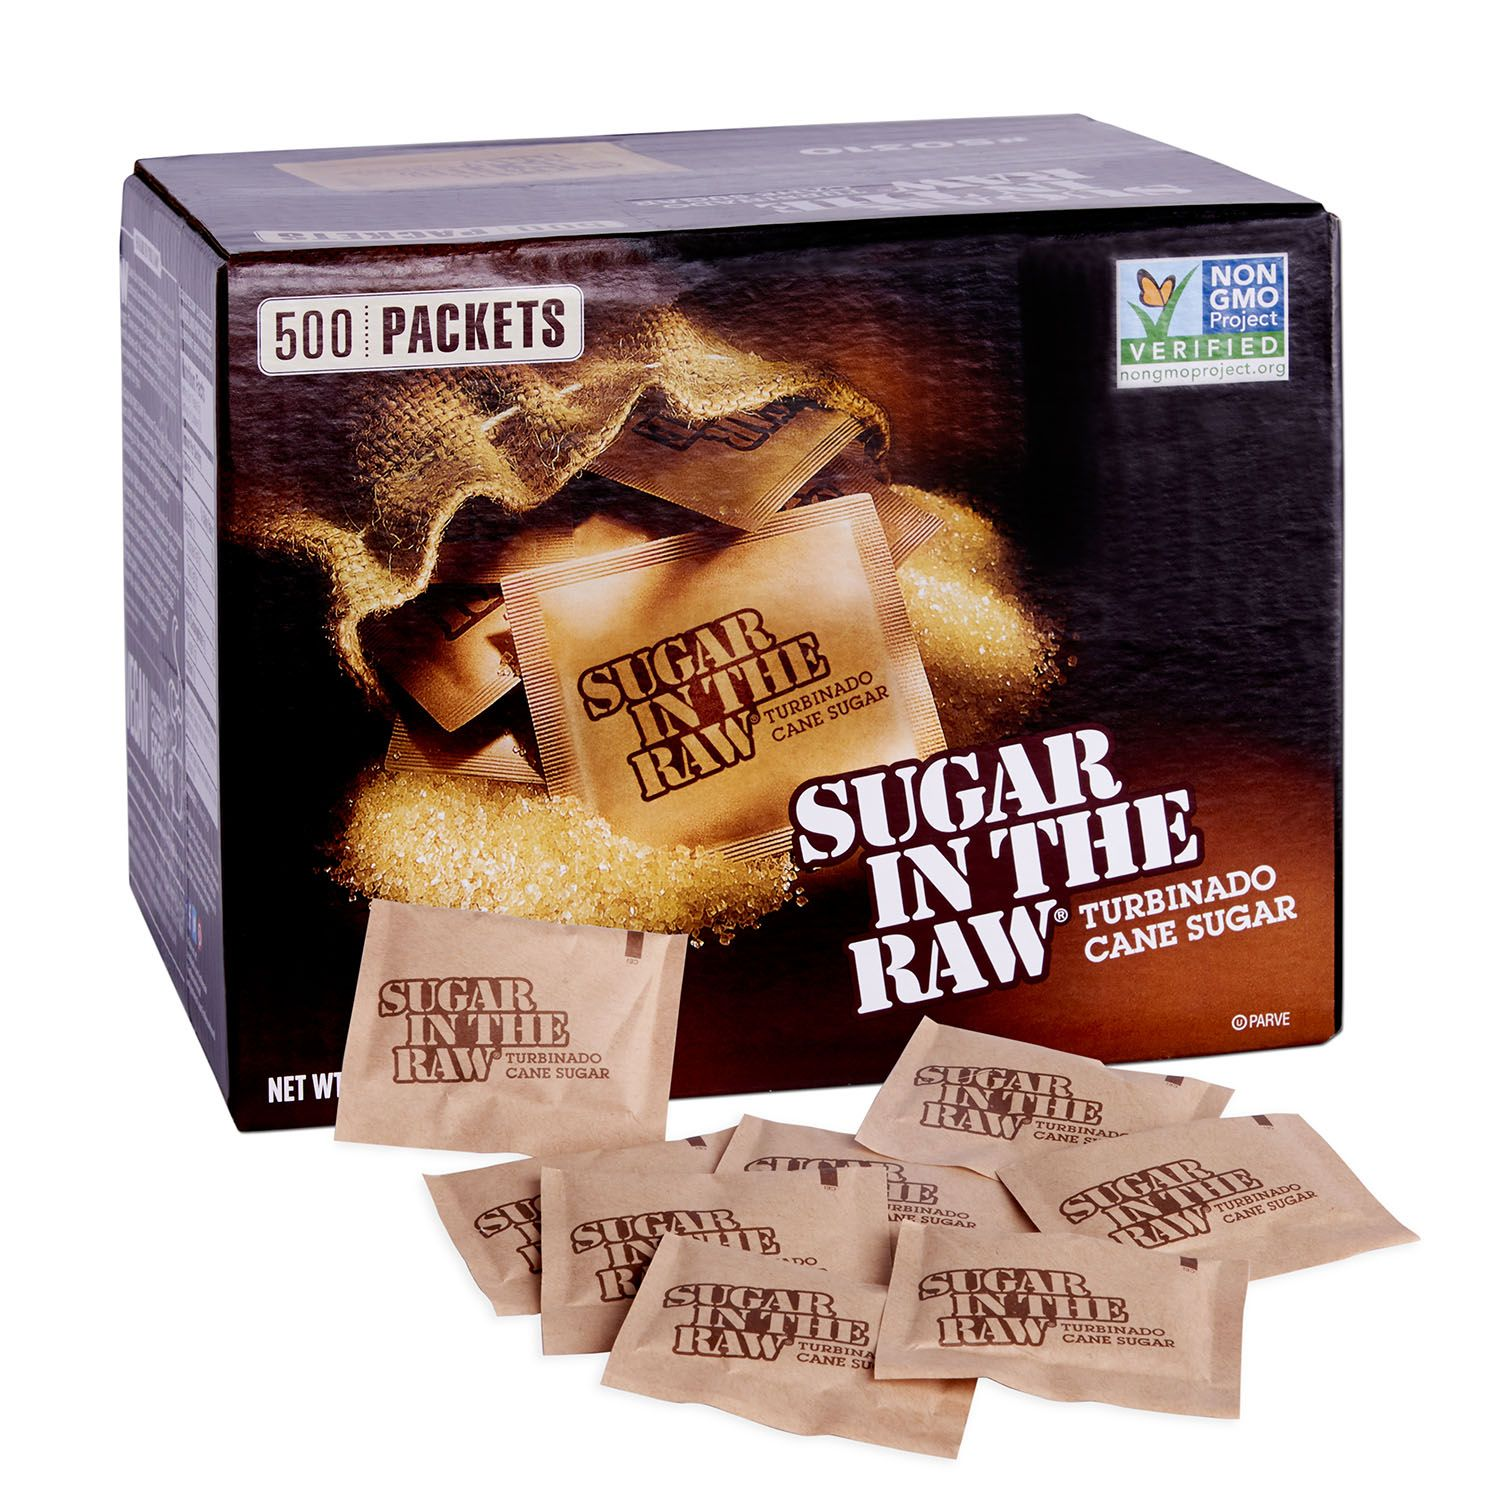 Sugar In The Raw Natural Cane Turbinado Sugar, 500 packets